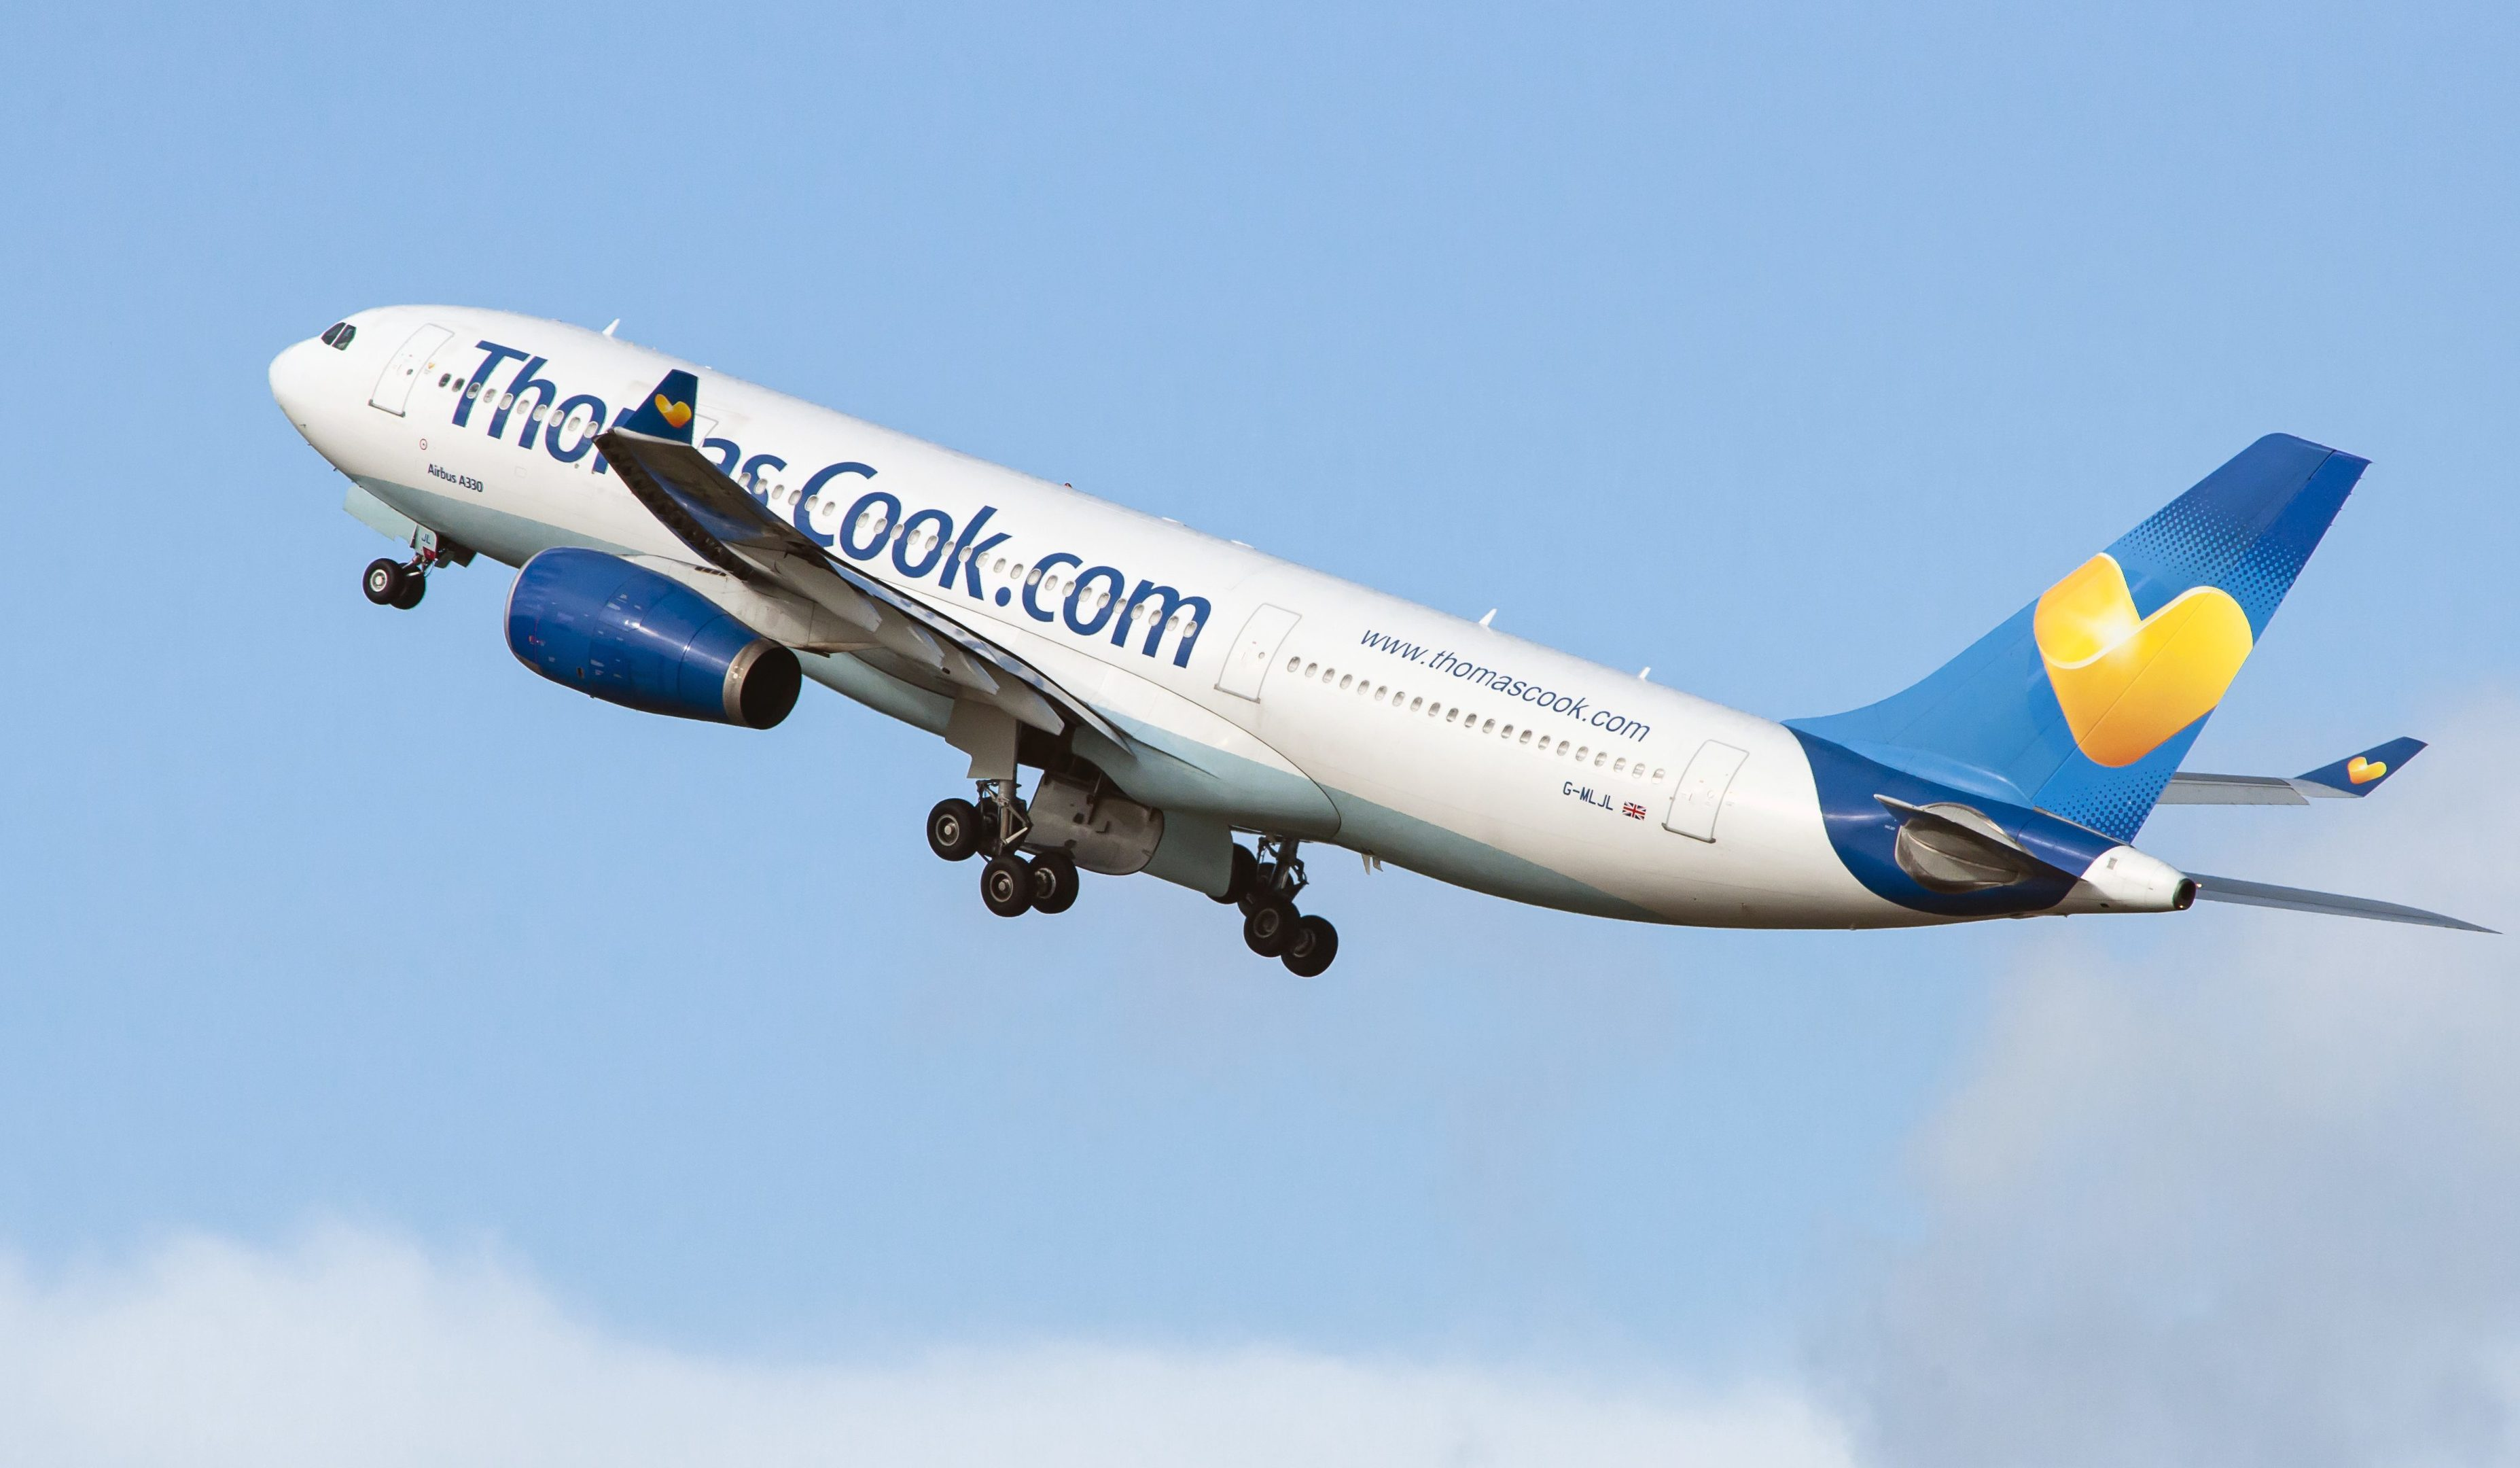 A Thomas Cook plane (Getty Images)